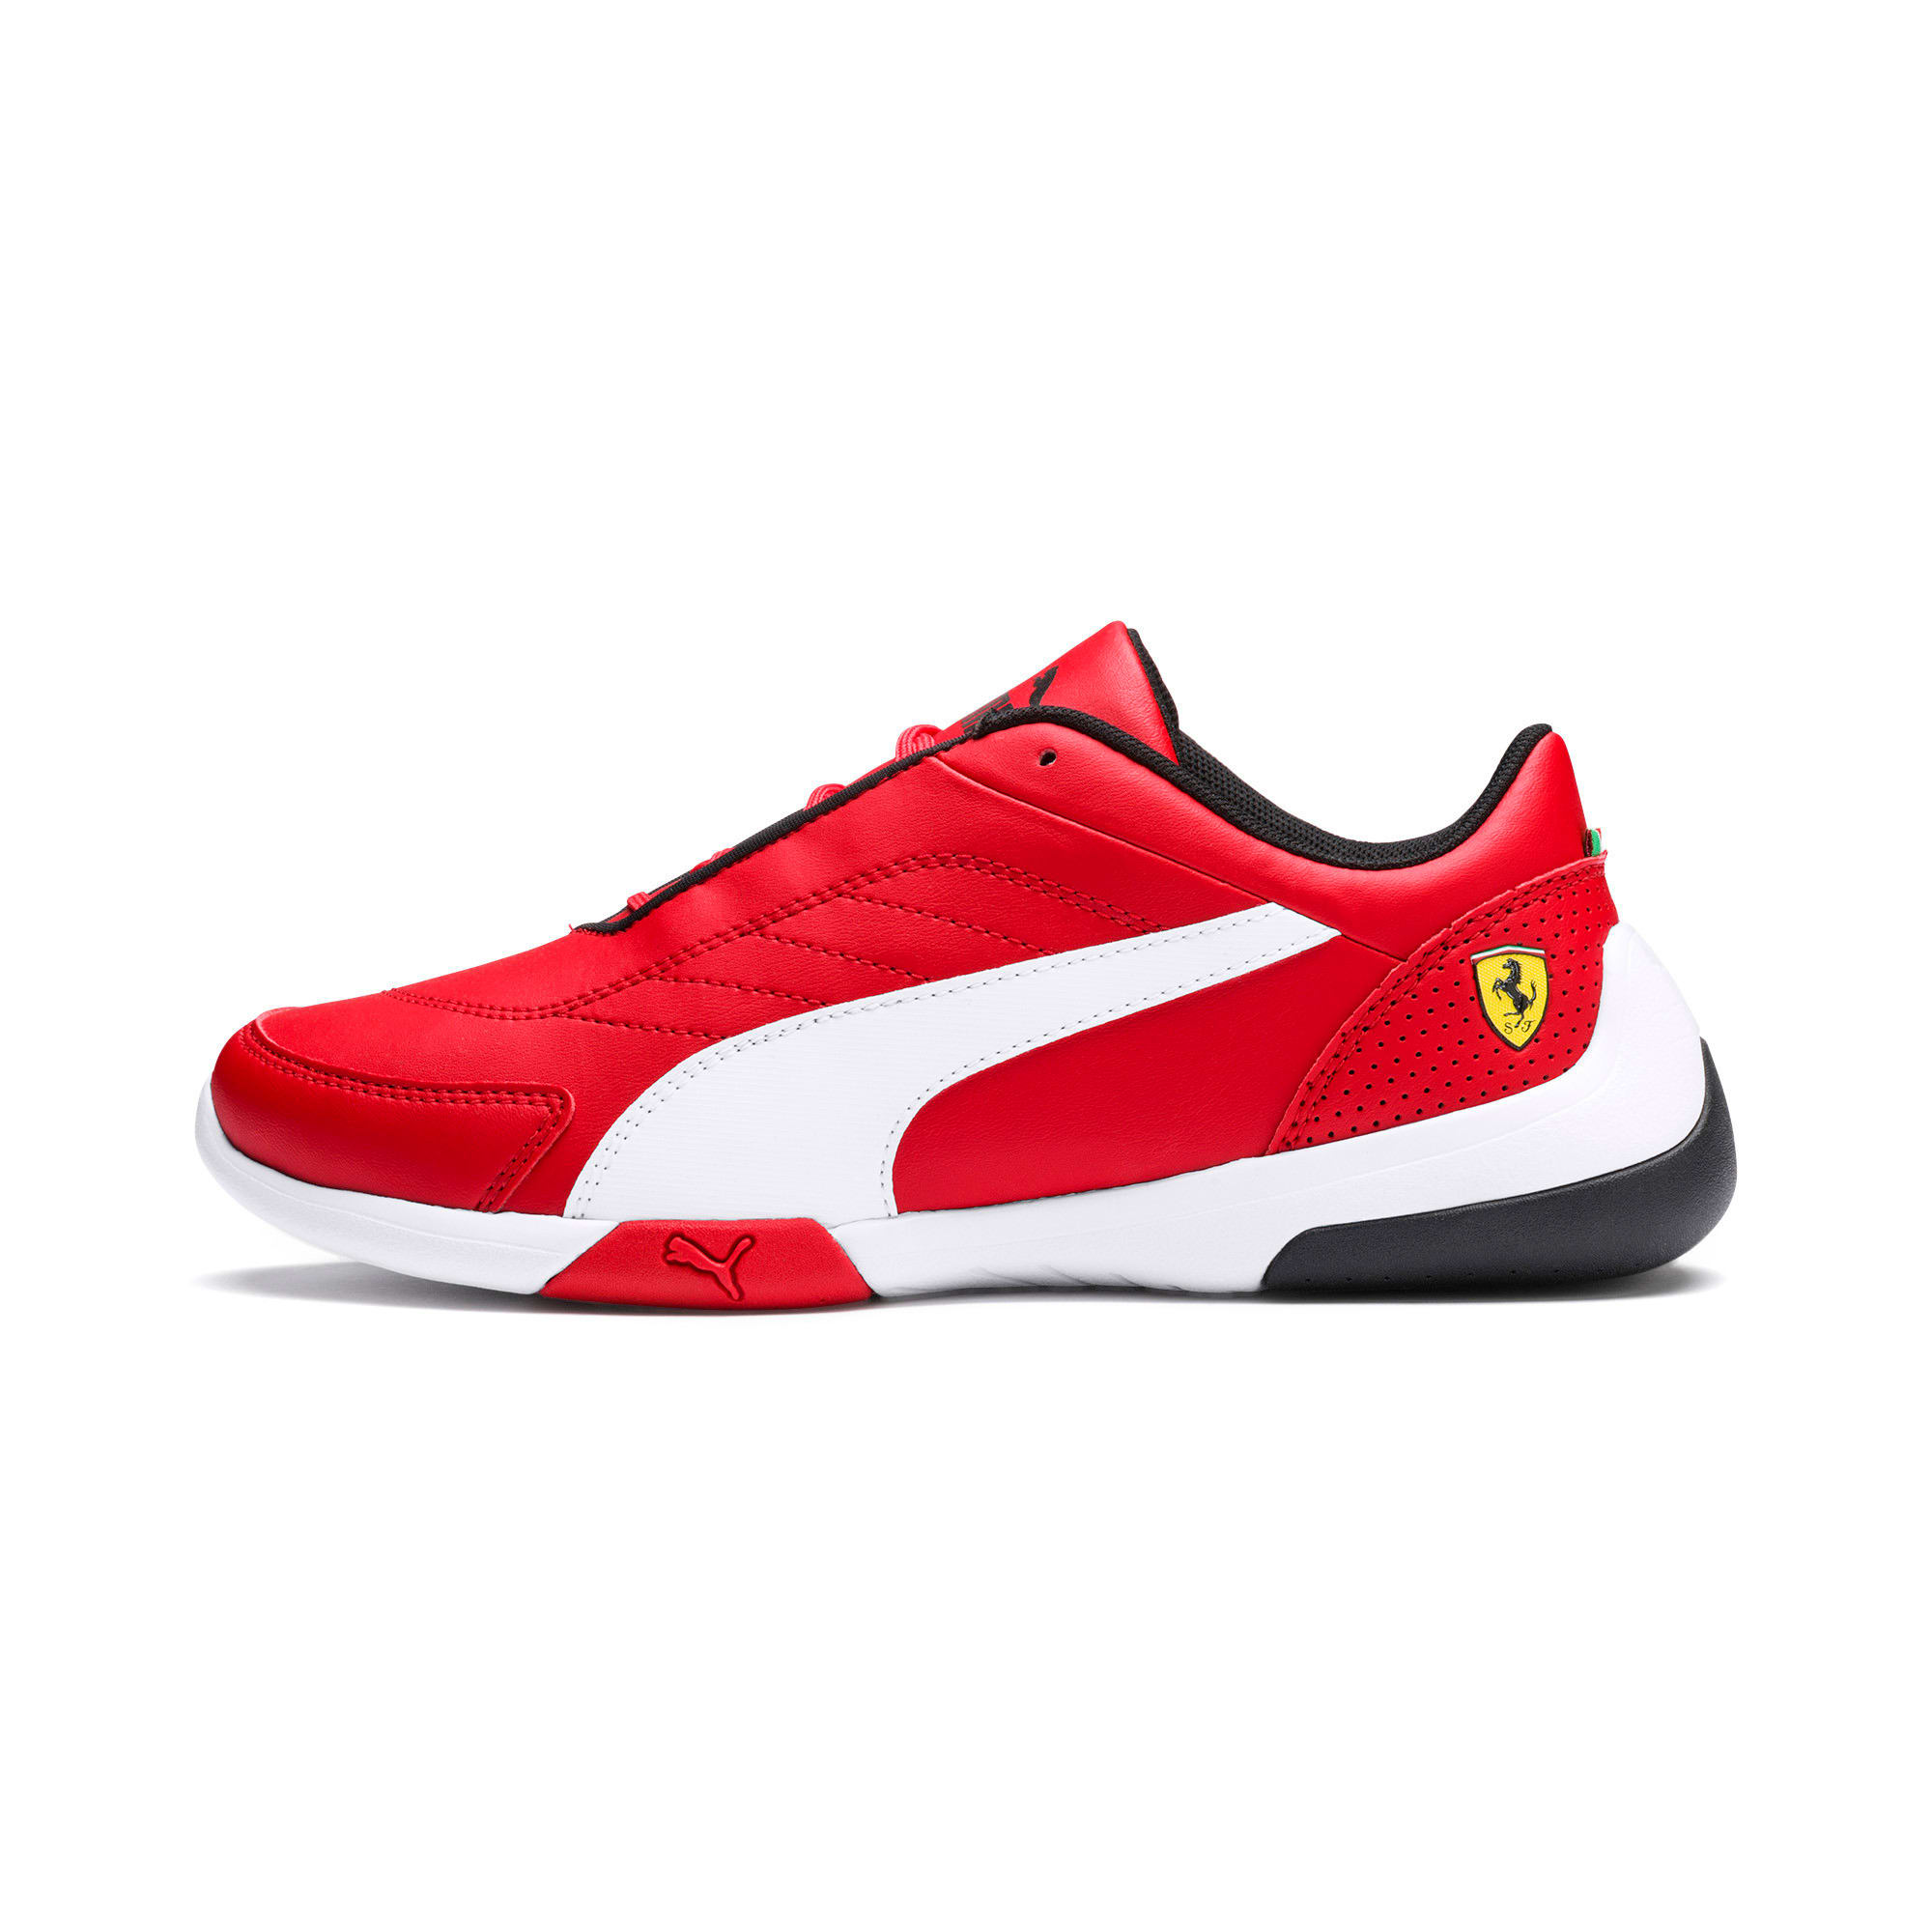 Thumbnail 1 of Ferrari Kart Cat III Youth Trainers, Rosso Corsa-Puma White, medium-SEA